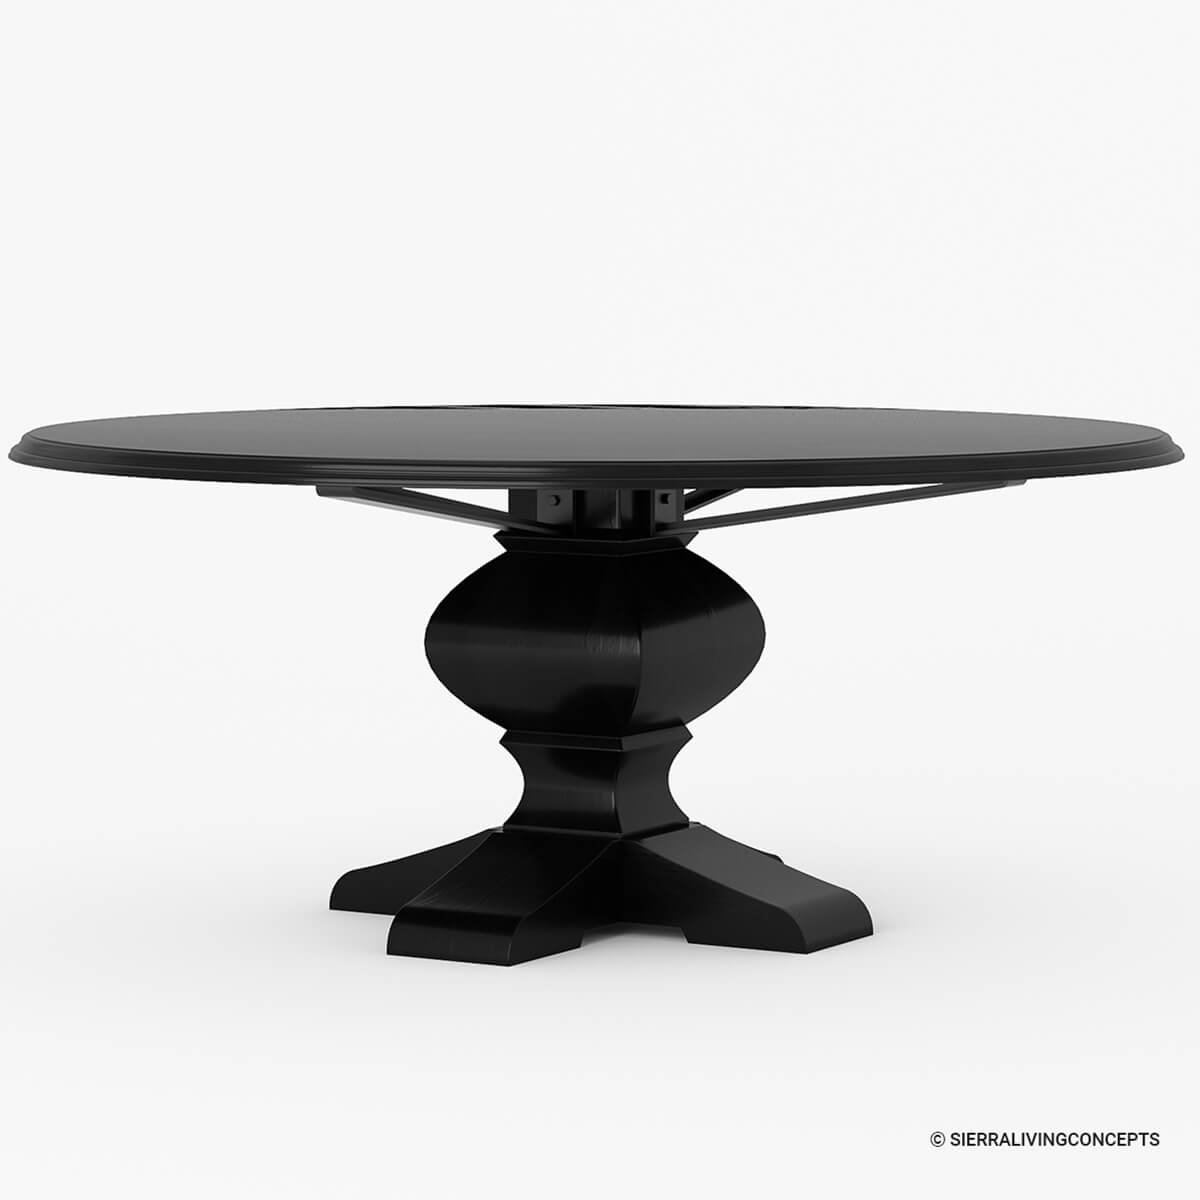 Sierra Nevada Rustic Solid Wood Large Round Dining Table